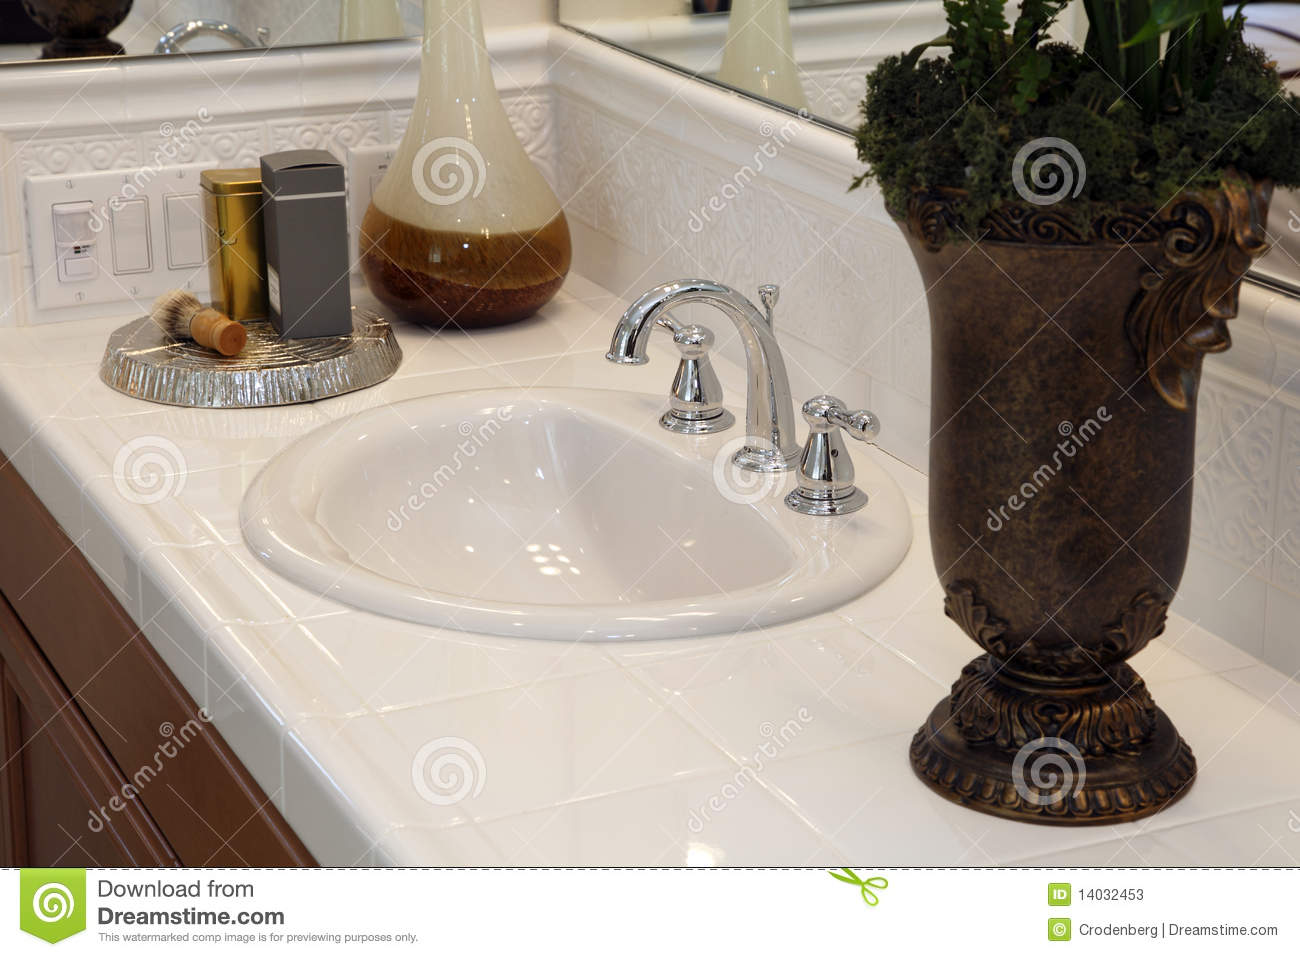 Luxury Bathroom Decor Stock Photos - Image: 14032453